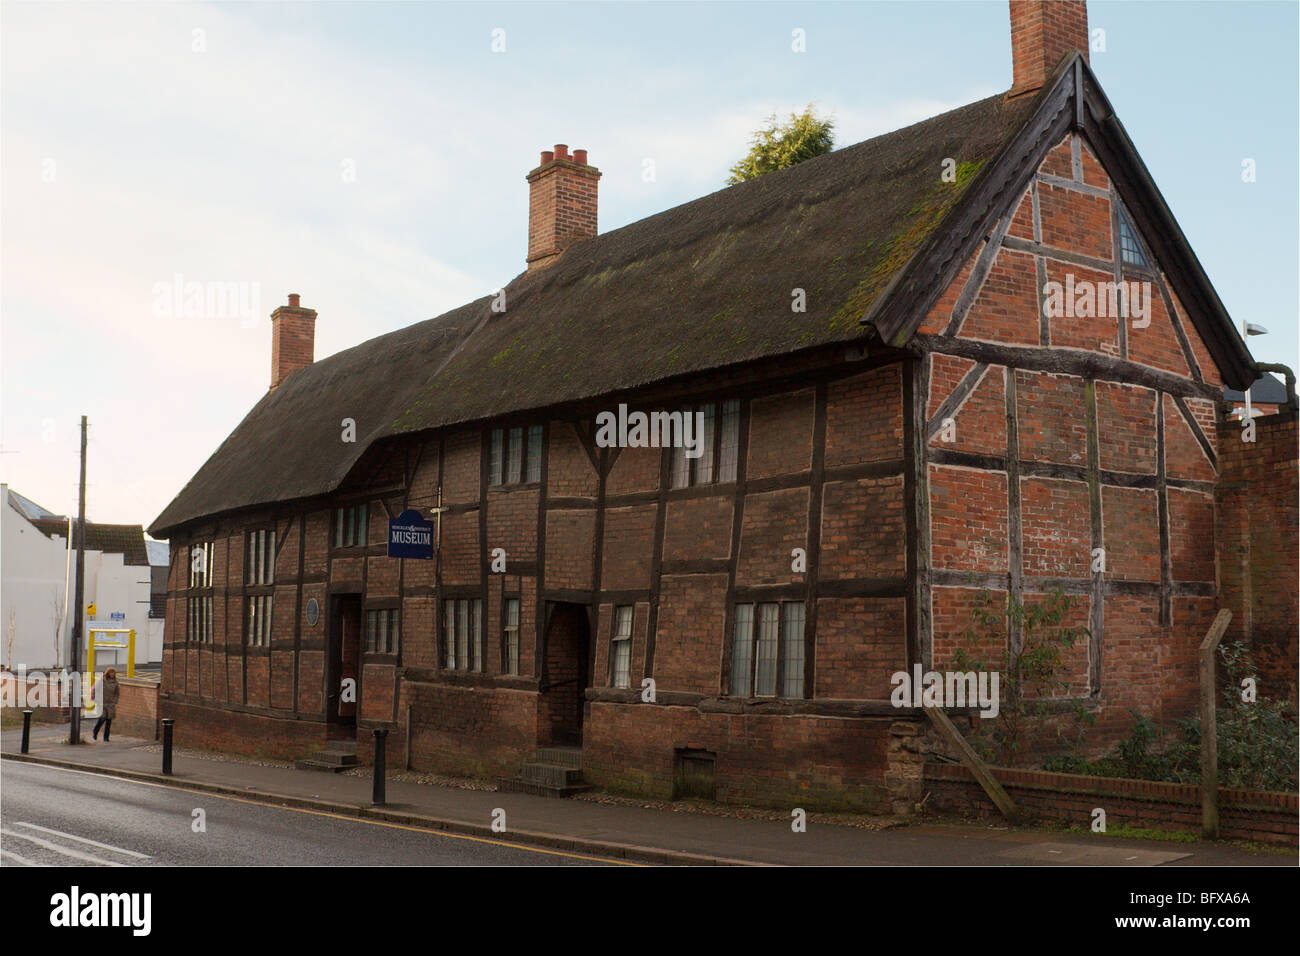 A row of wood framed knitter's cottages. - Stock Image